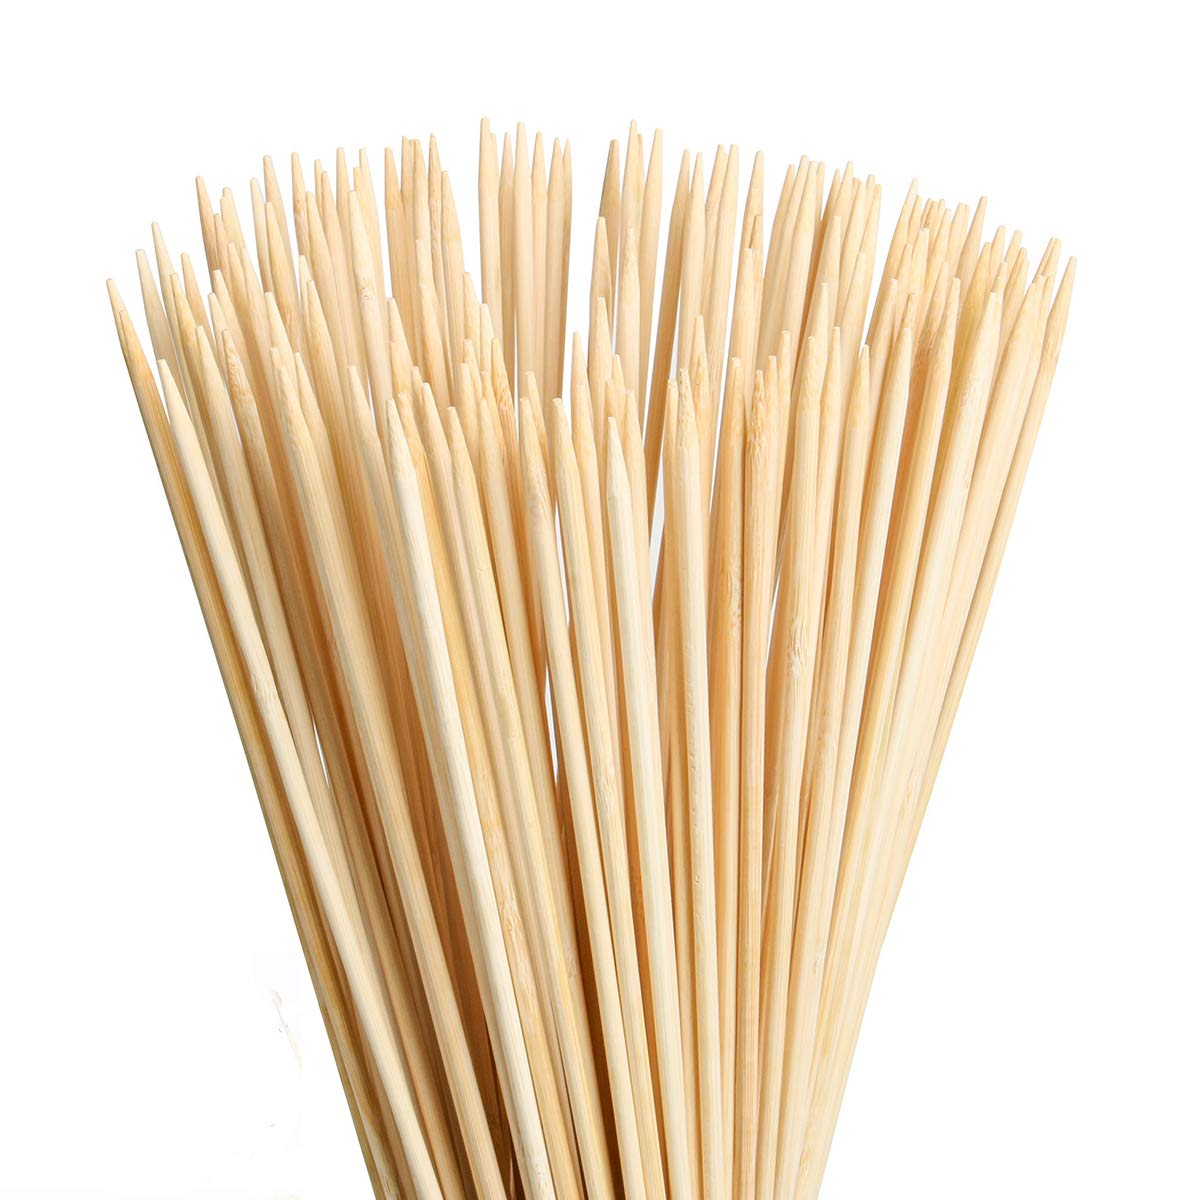 FLYPARTY Bamboo Marshmallow Roasting Sticks with 30 Inch 5mm Thick Extra Long Heavy Duty Wooden Skewers,Roaster Barbecue S'Mores Skewers Hot Dog Forks for Camping,Party,Kebab Sausage(40 Pcs) by FLYPARTY